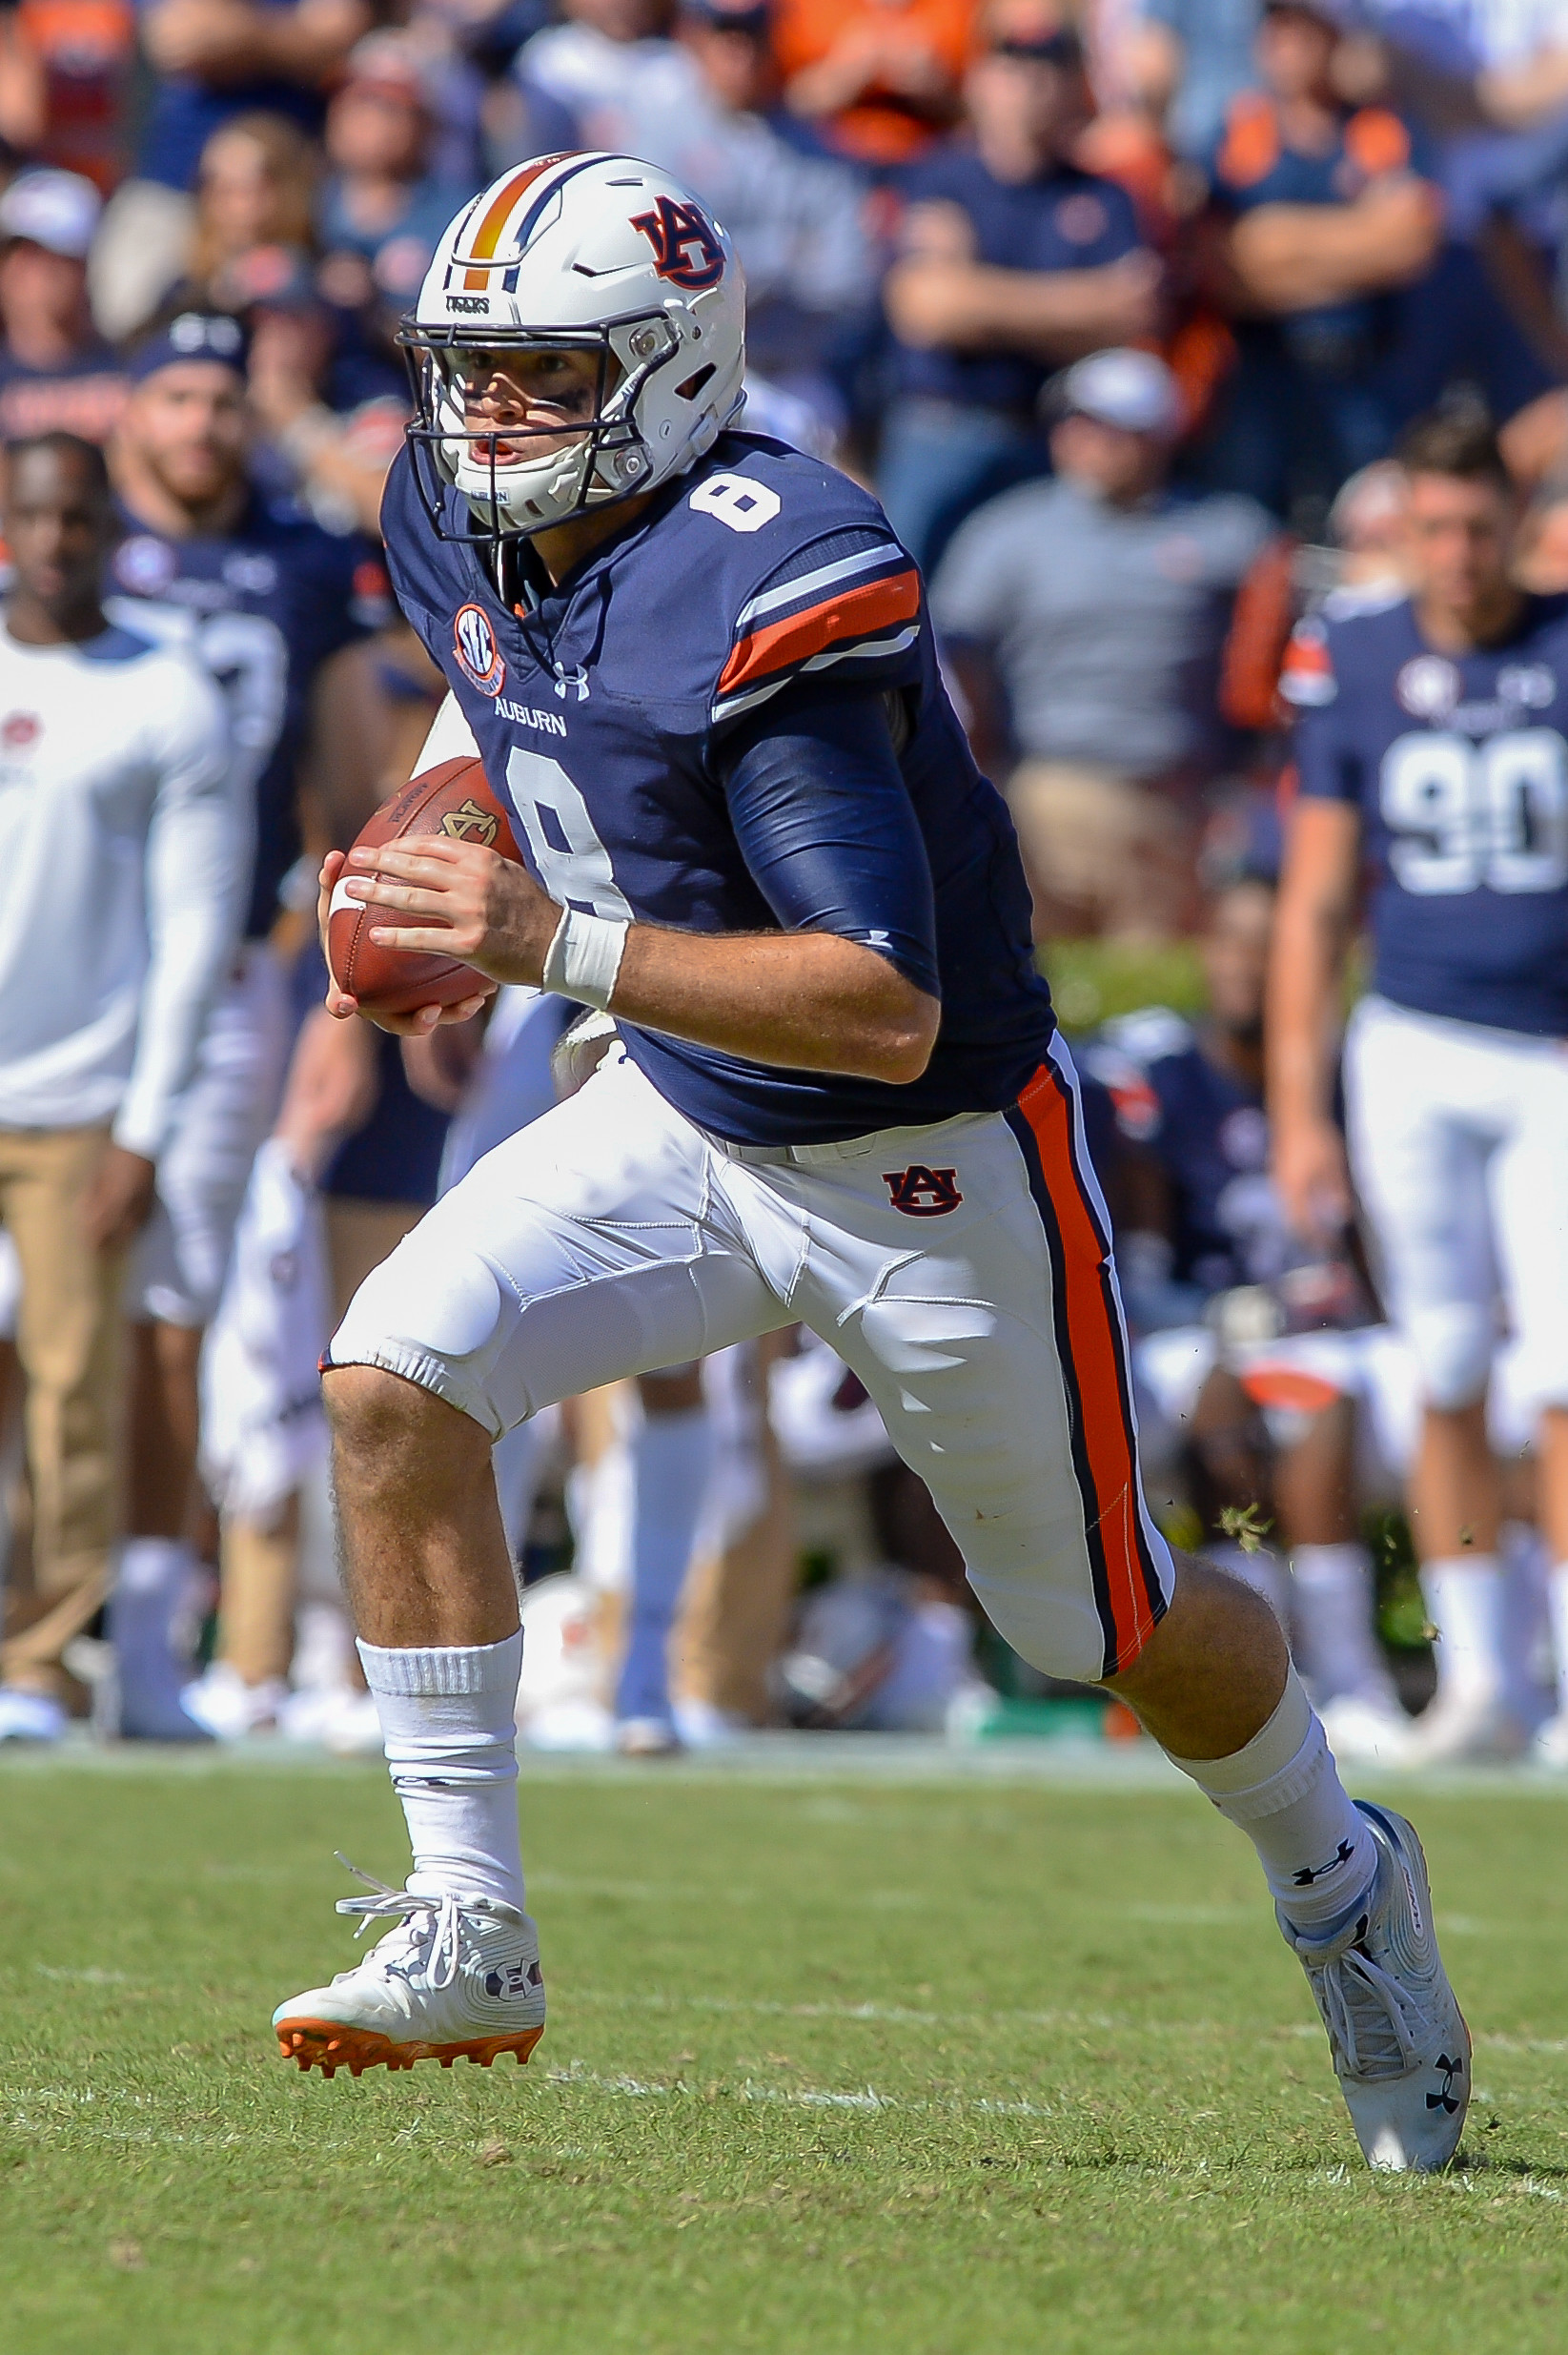 Auburn Tigers quarterback Jarrett Stidham (8) runs during the second half of Saturday's game, at Jordan-Hare Stadium in Auburn, AL. Daily Mountain Eagle -  Jeff Johnsey